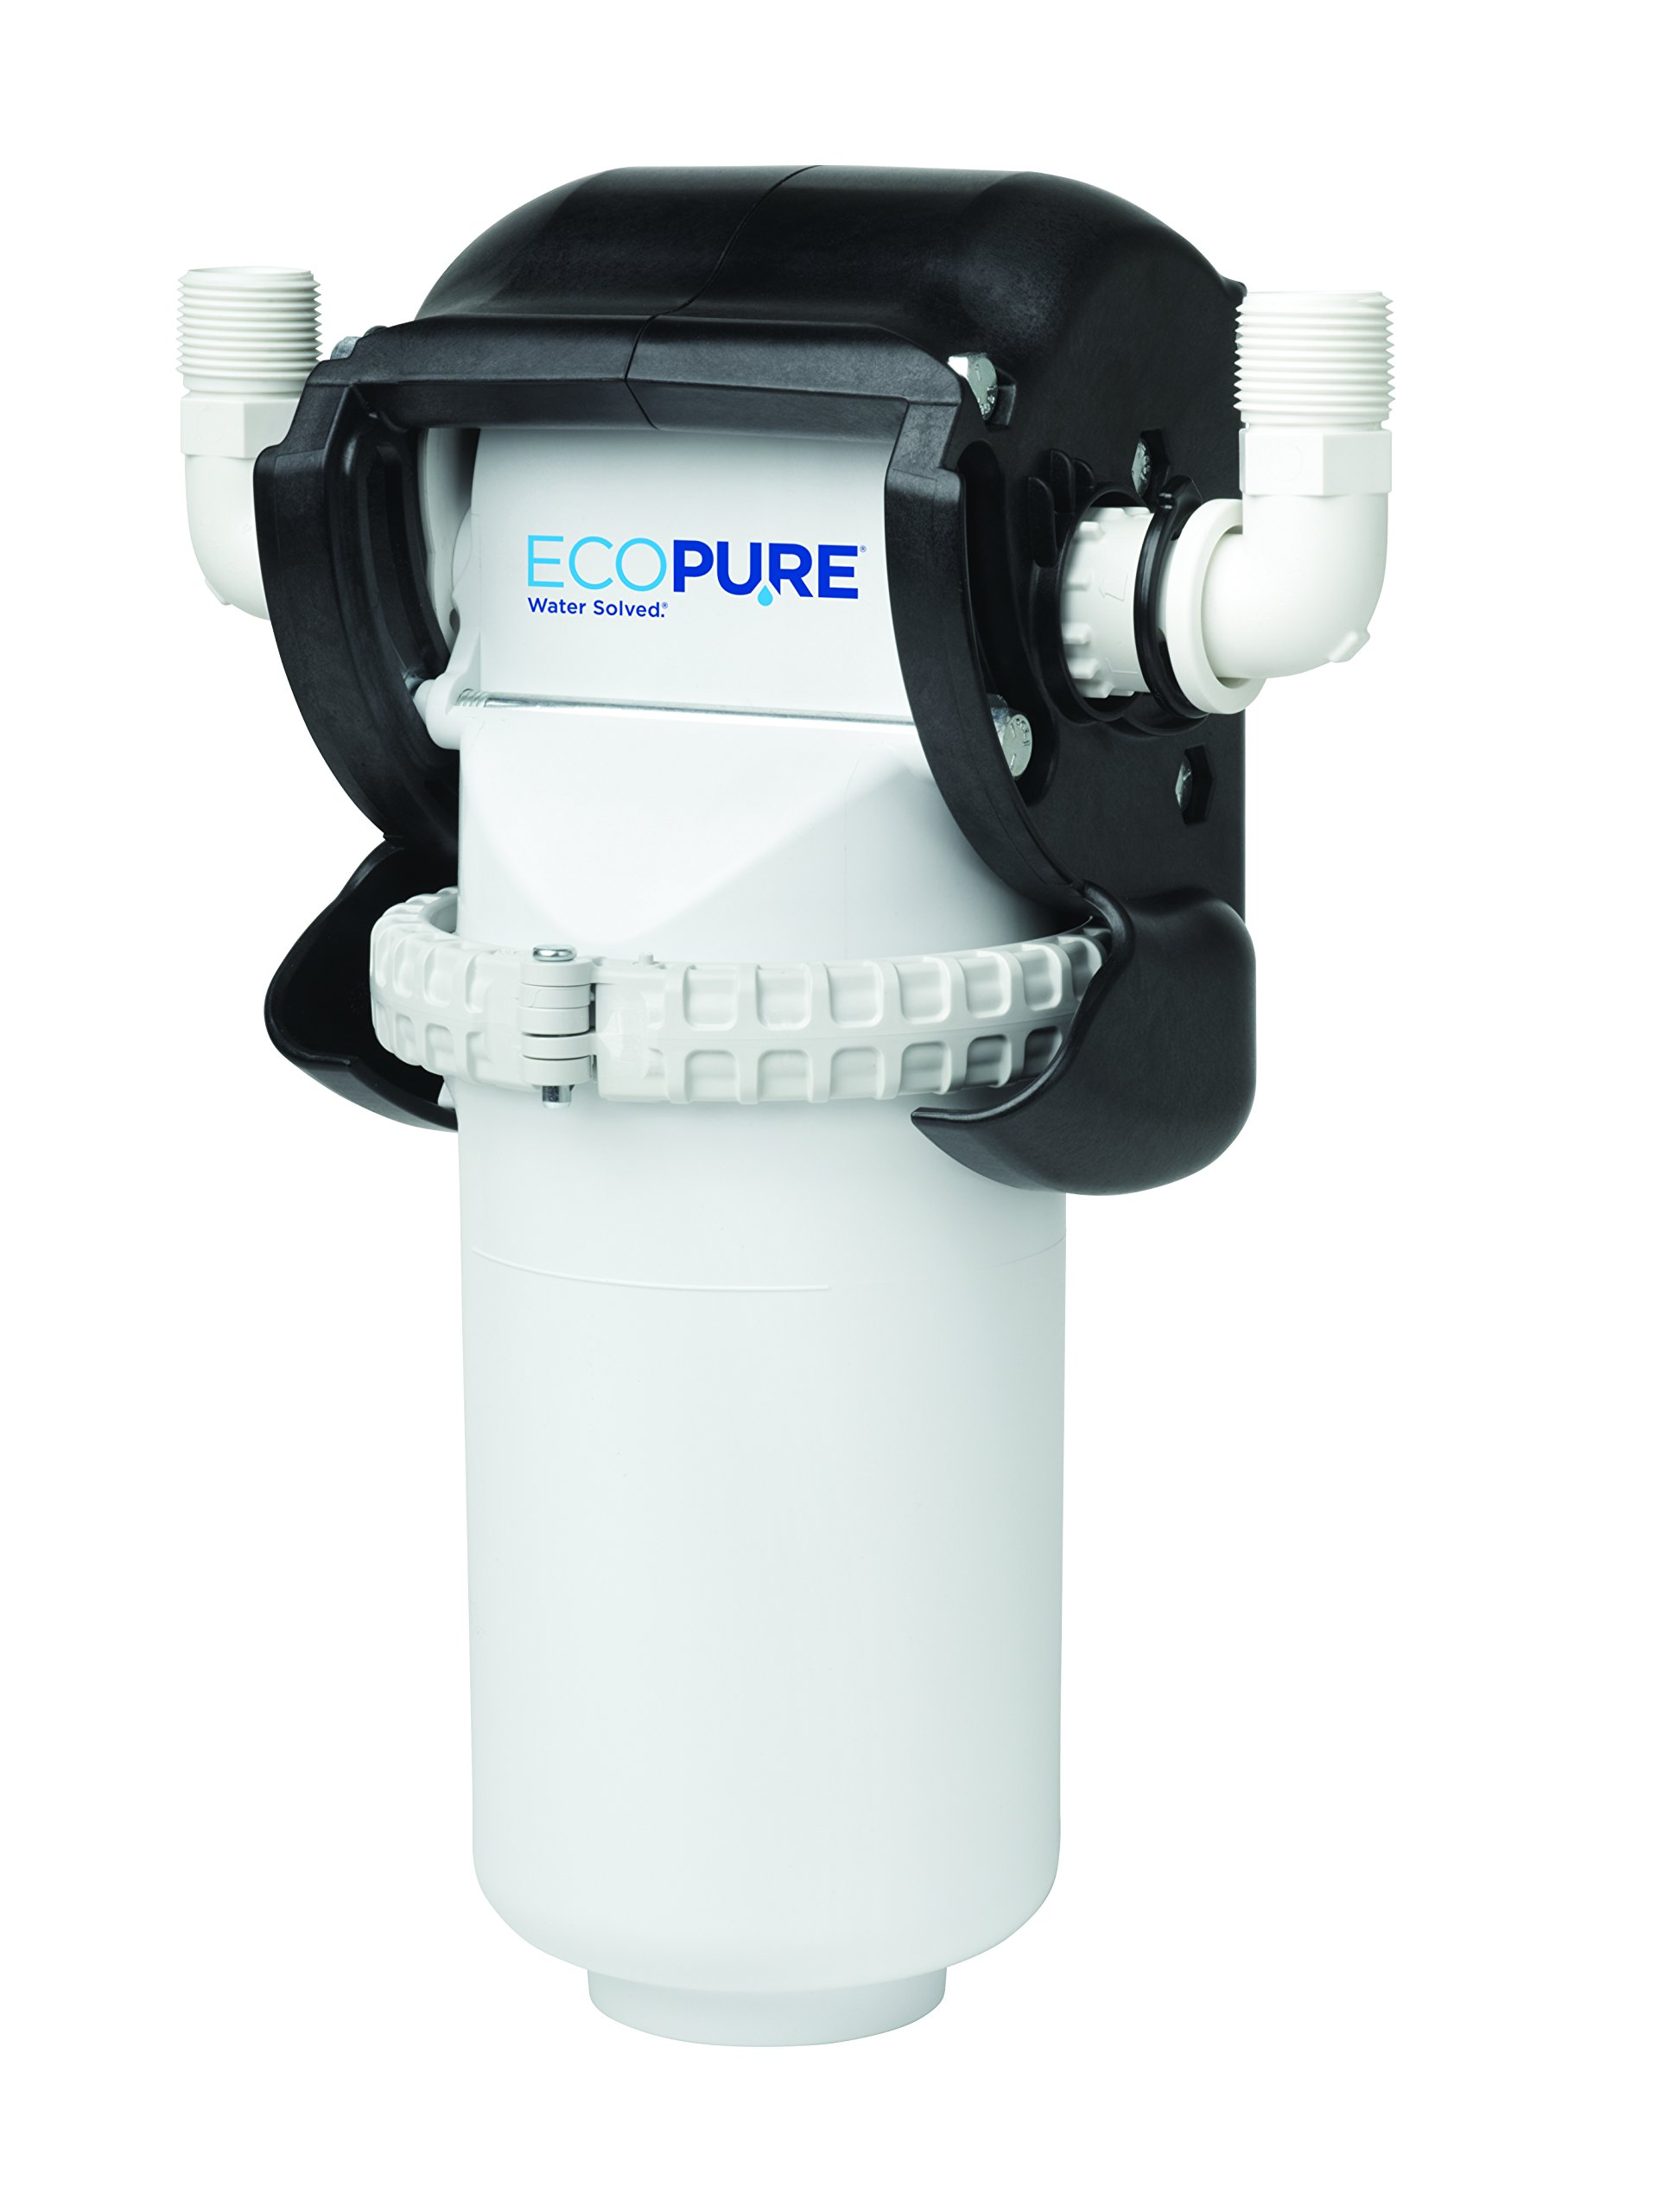 EcoPure EPWHE No Mess Whole Home Water Filtration System - New Innovation - NSF Certified - Built in the USA - Designed to Last